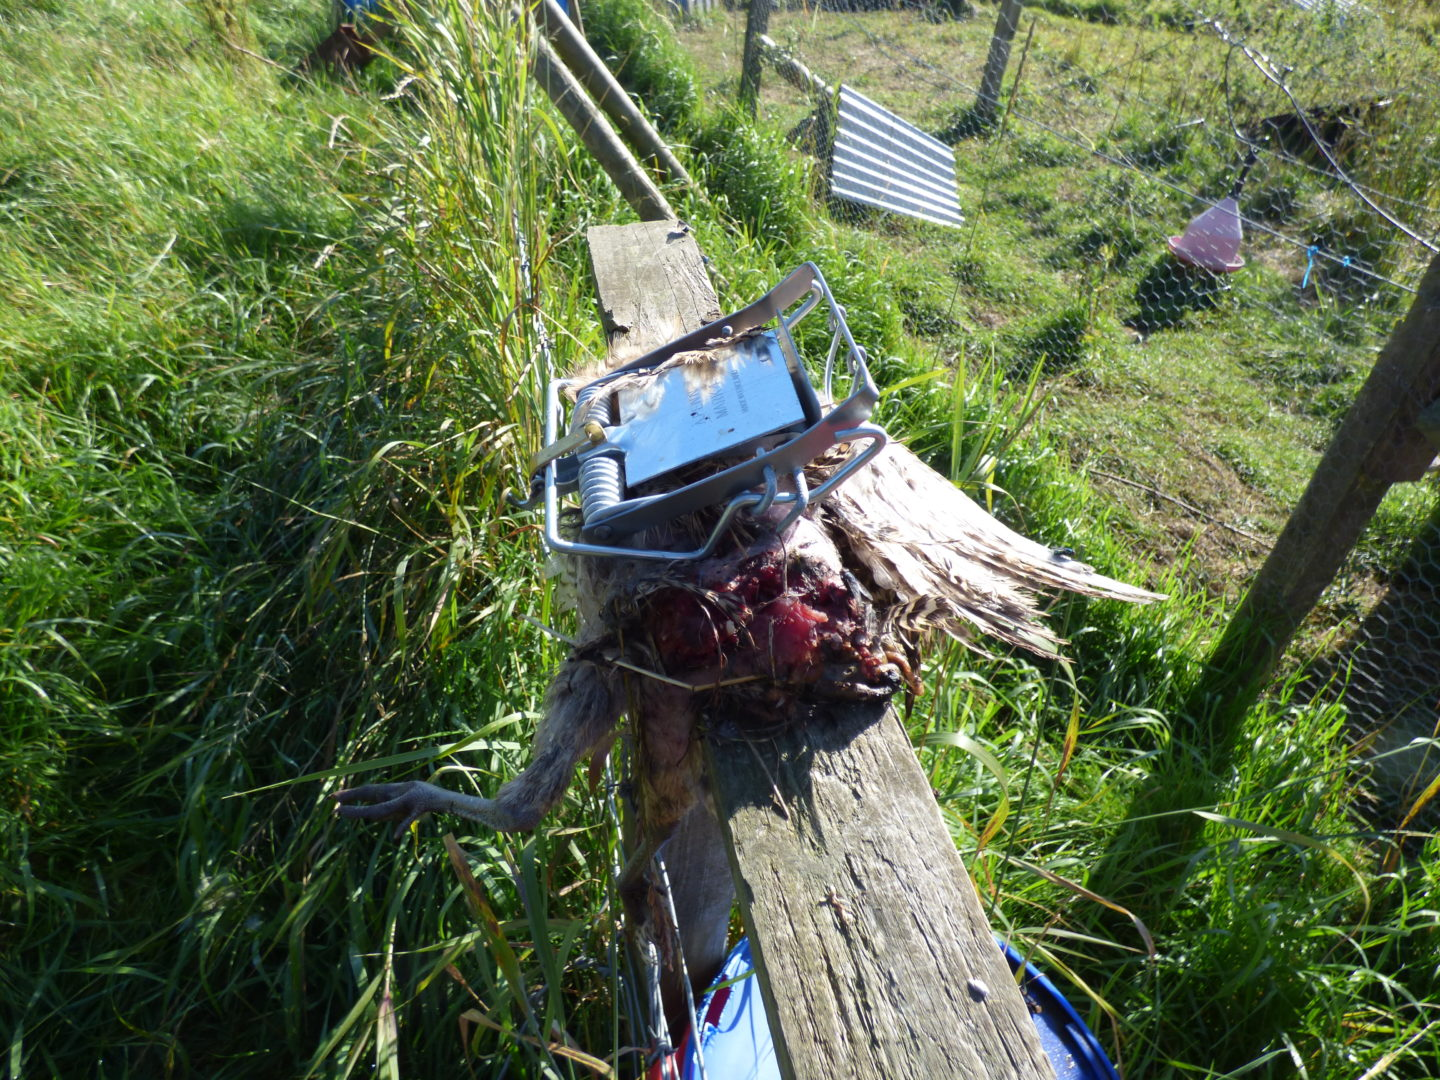 Footage Of Illegal Trap Released Amid Fresh Calls For More Powers